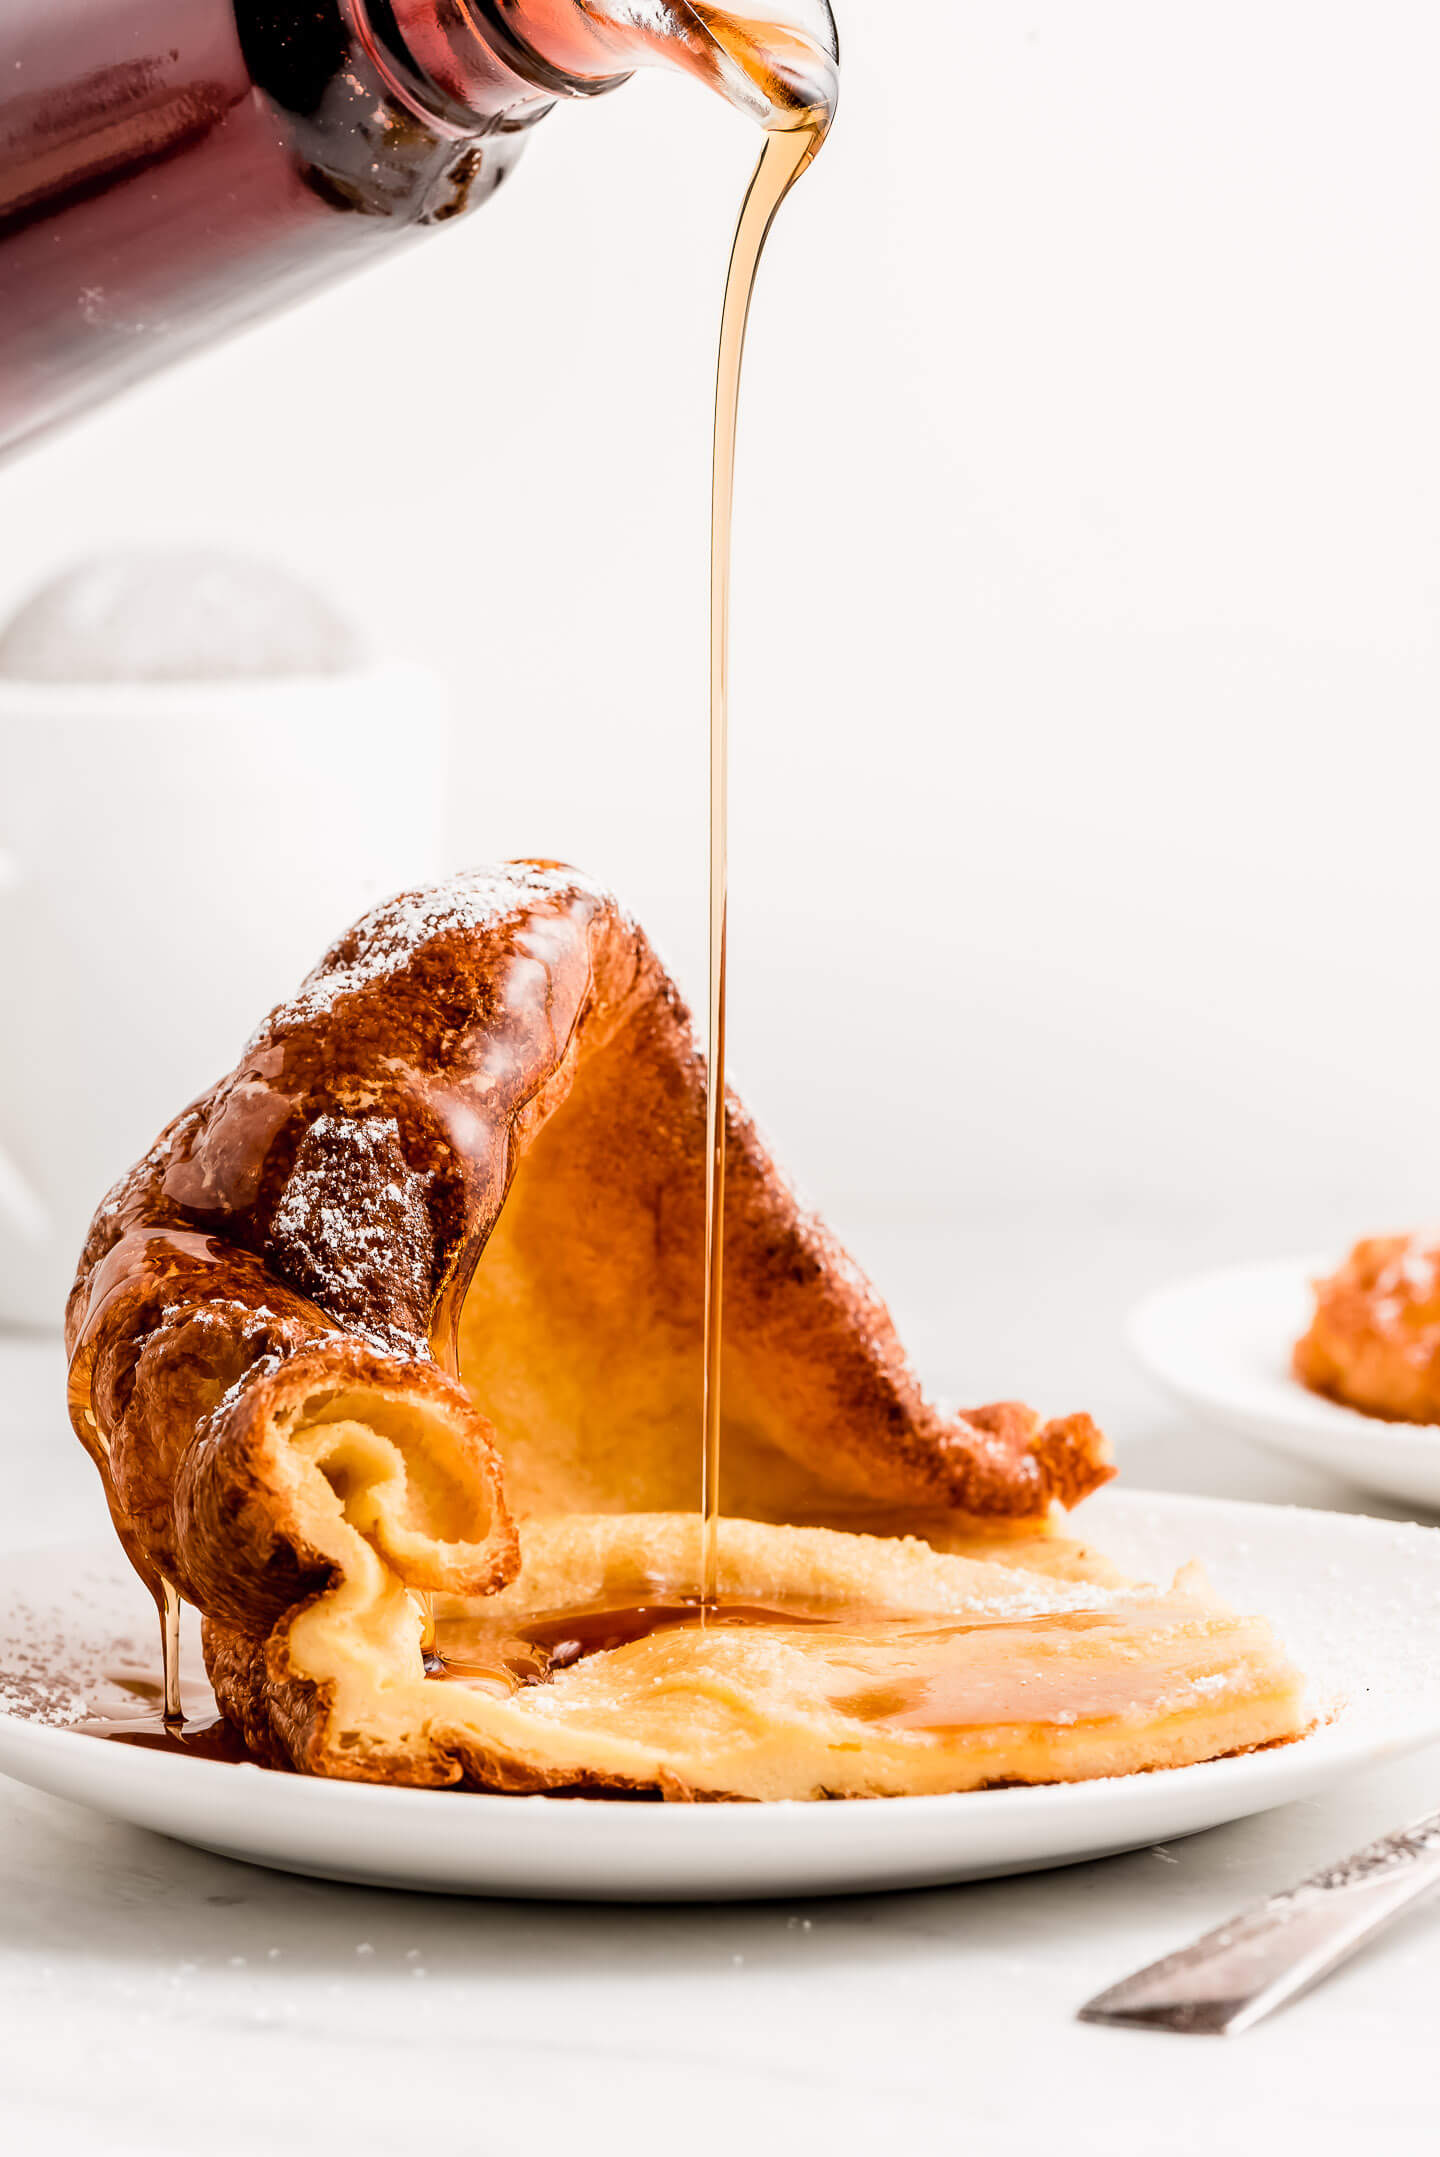 Syrup streaming down onto a slice of German Pancakes.